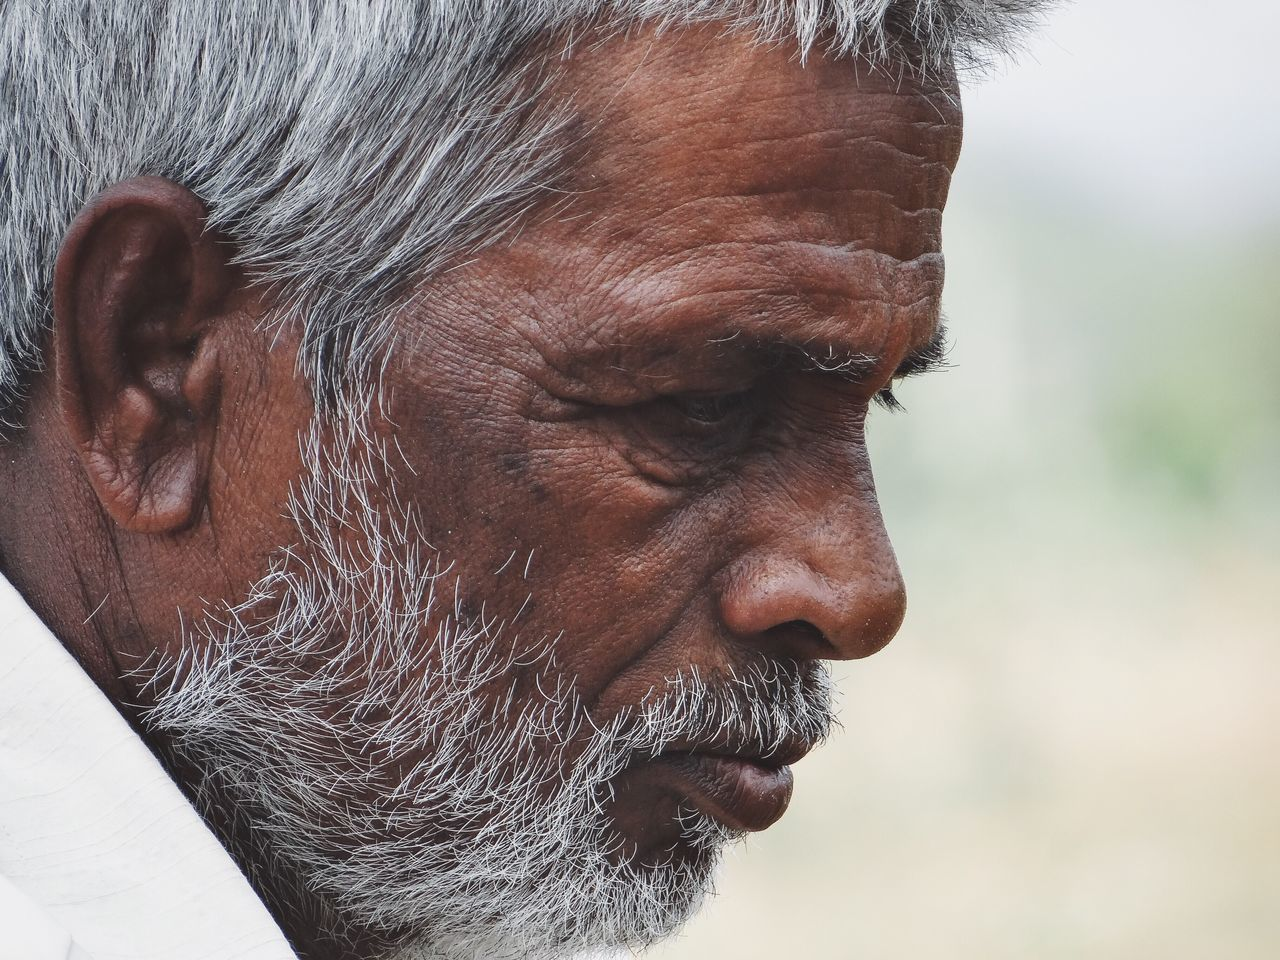 Pensive villager Close-up Outdoors Pensive Mood Facial Expression Villager Farmer Indian Asian  Portrait People Grey Old Old Age Grey Hair Hipster Beard Facial Hair